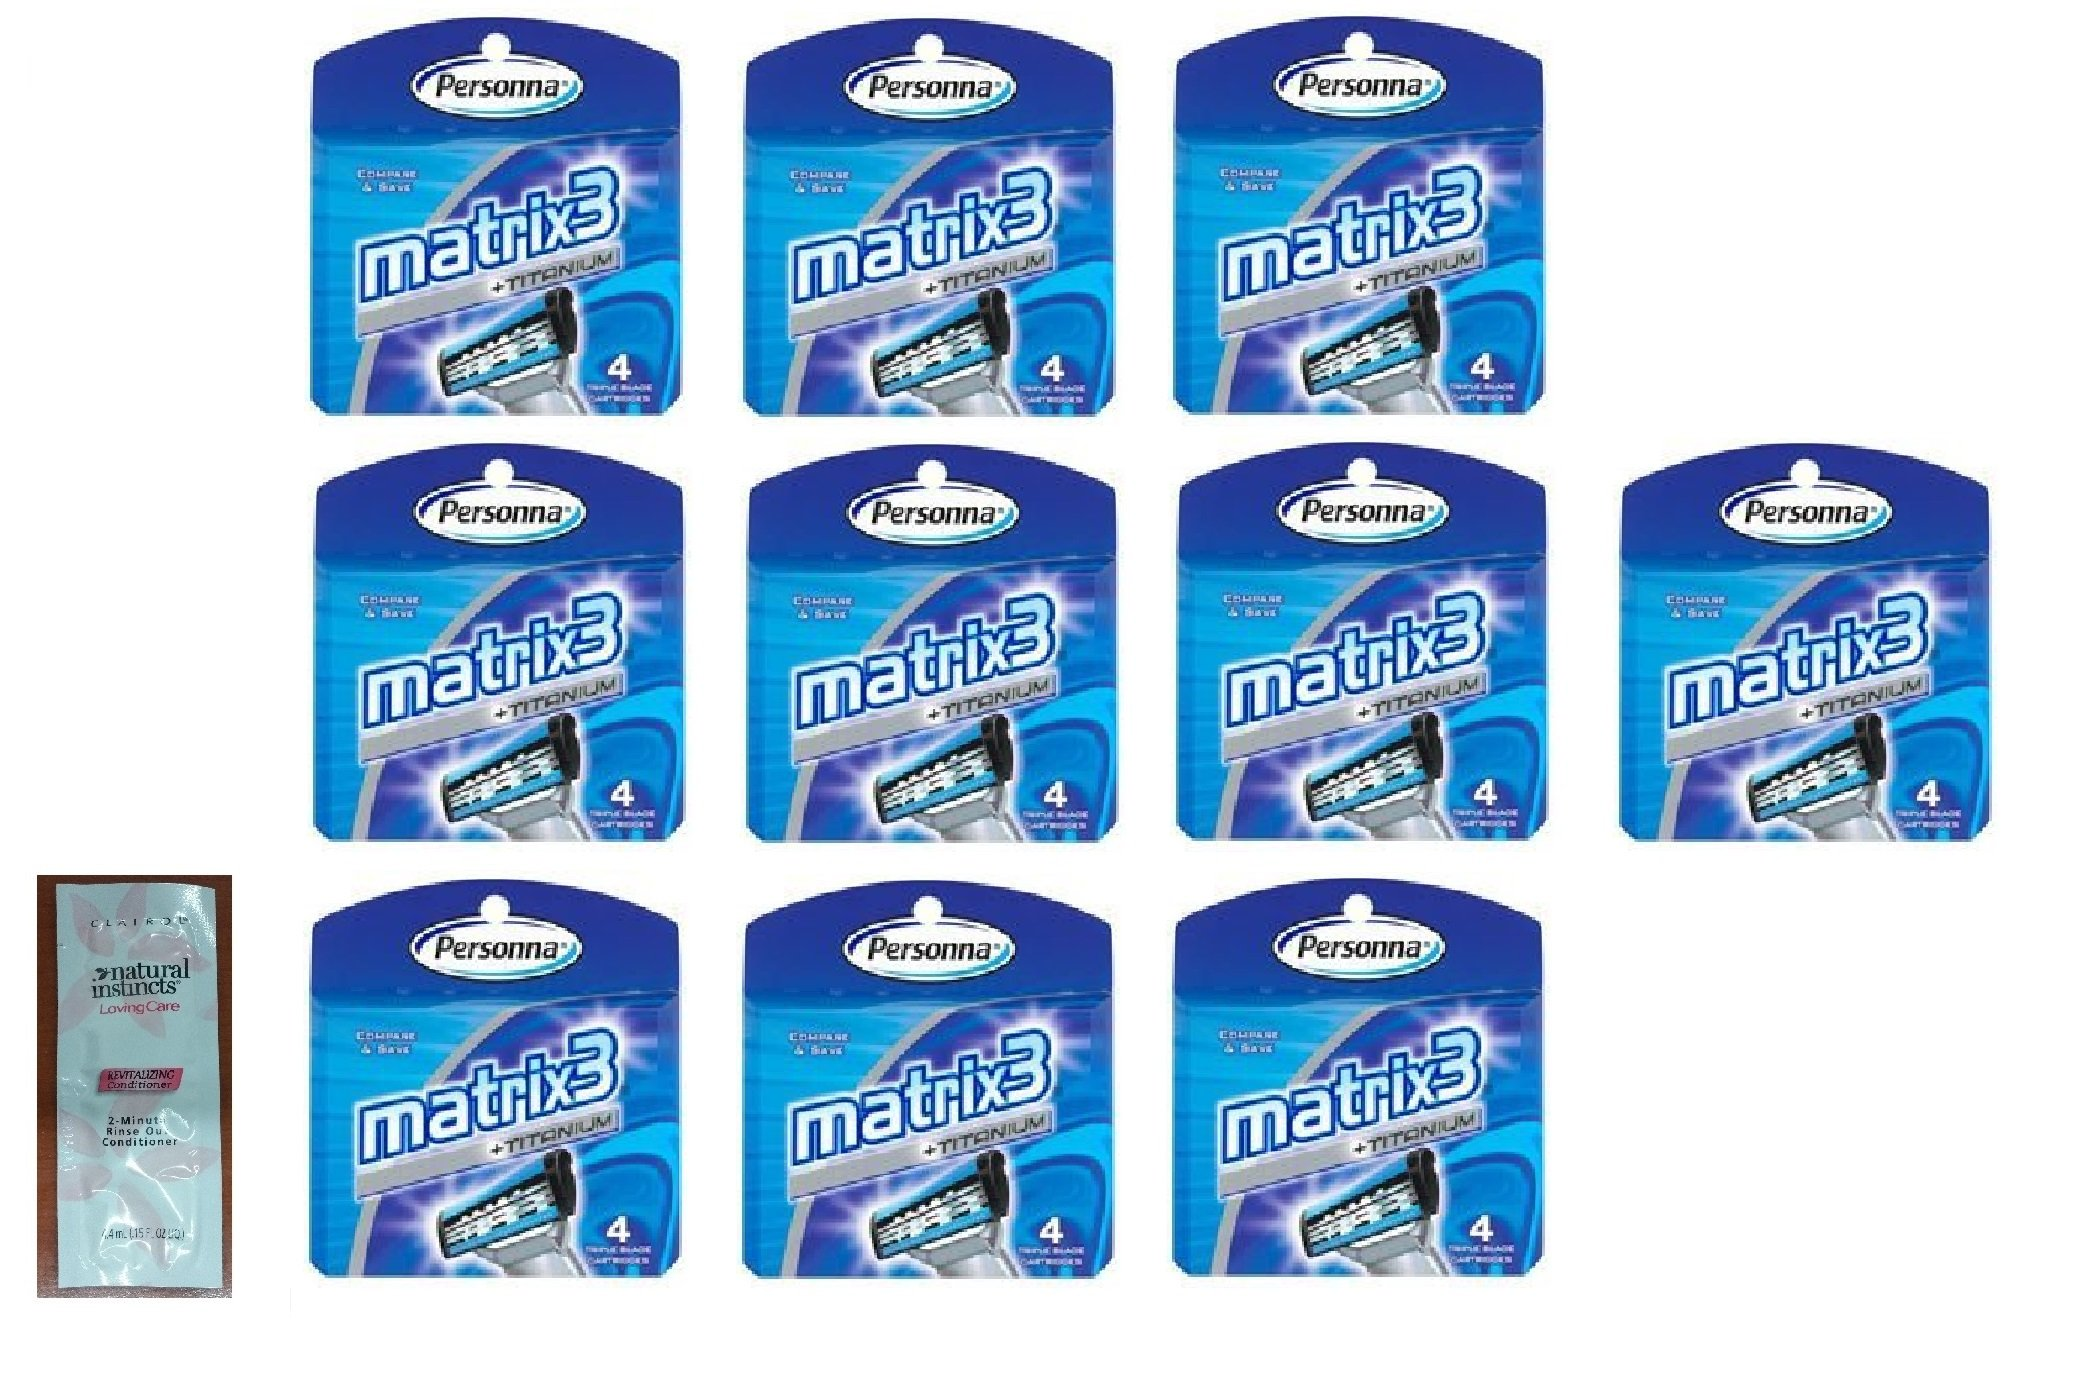 Personna Matrix3 Titanium Triple Blade Refill Cartridge Blades, 4 Ct. (Pack of 10) with FREE Loving Color trial size conditioner